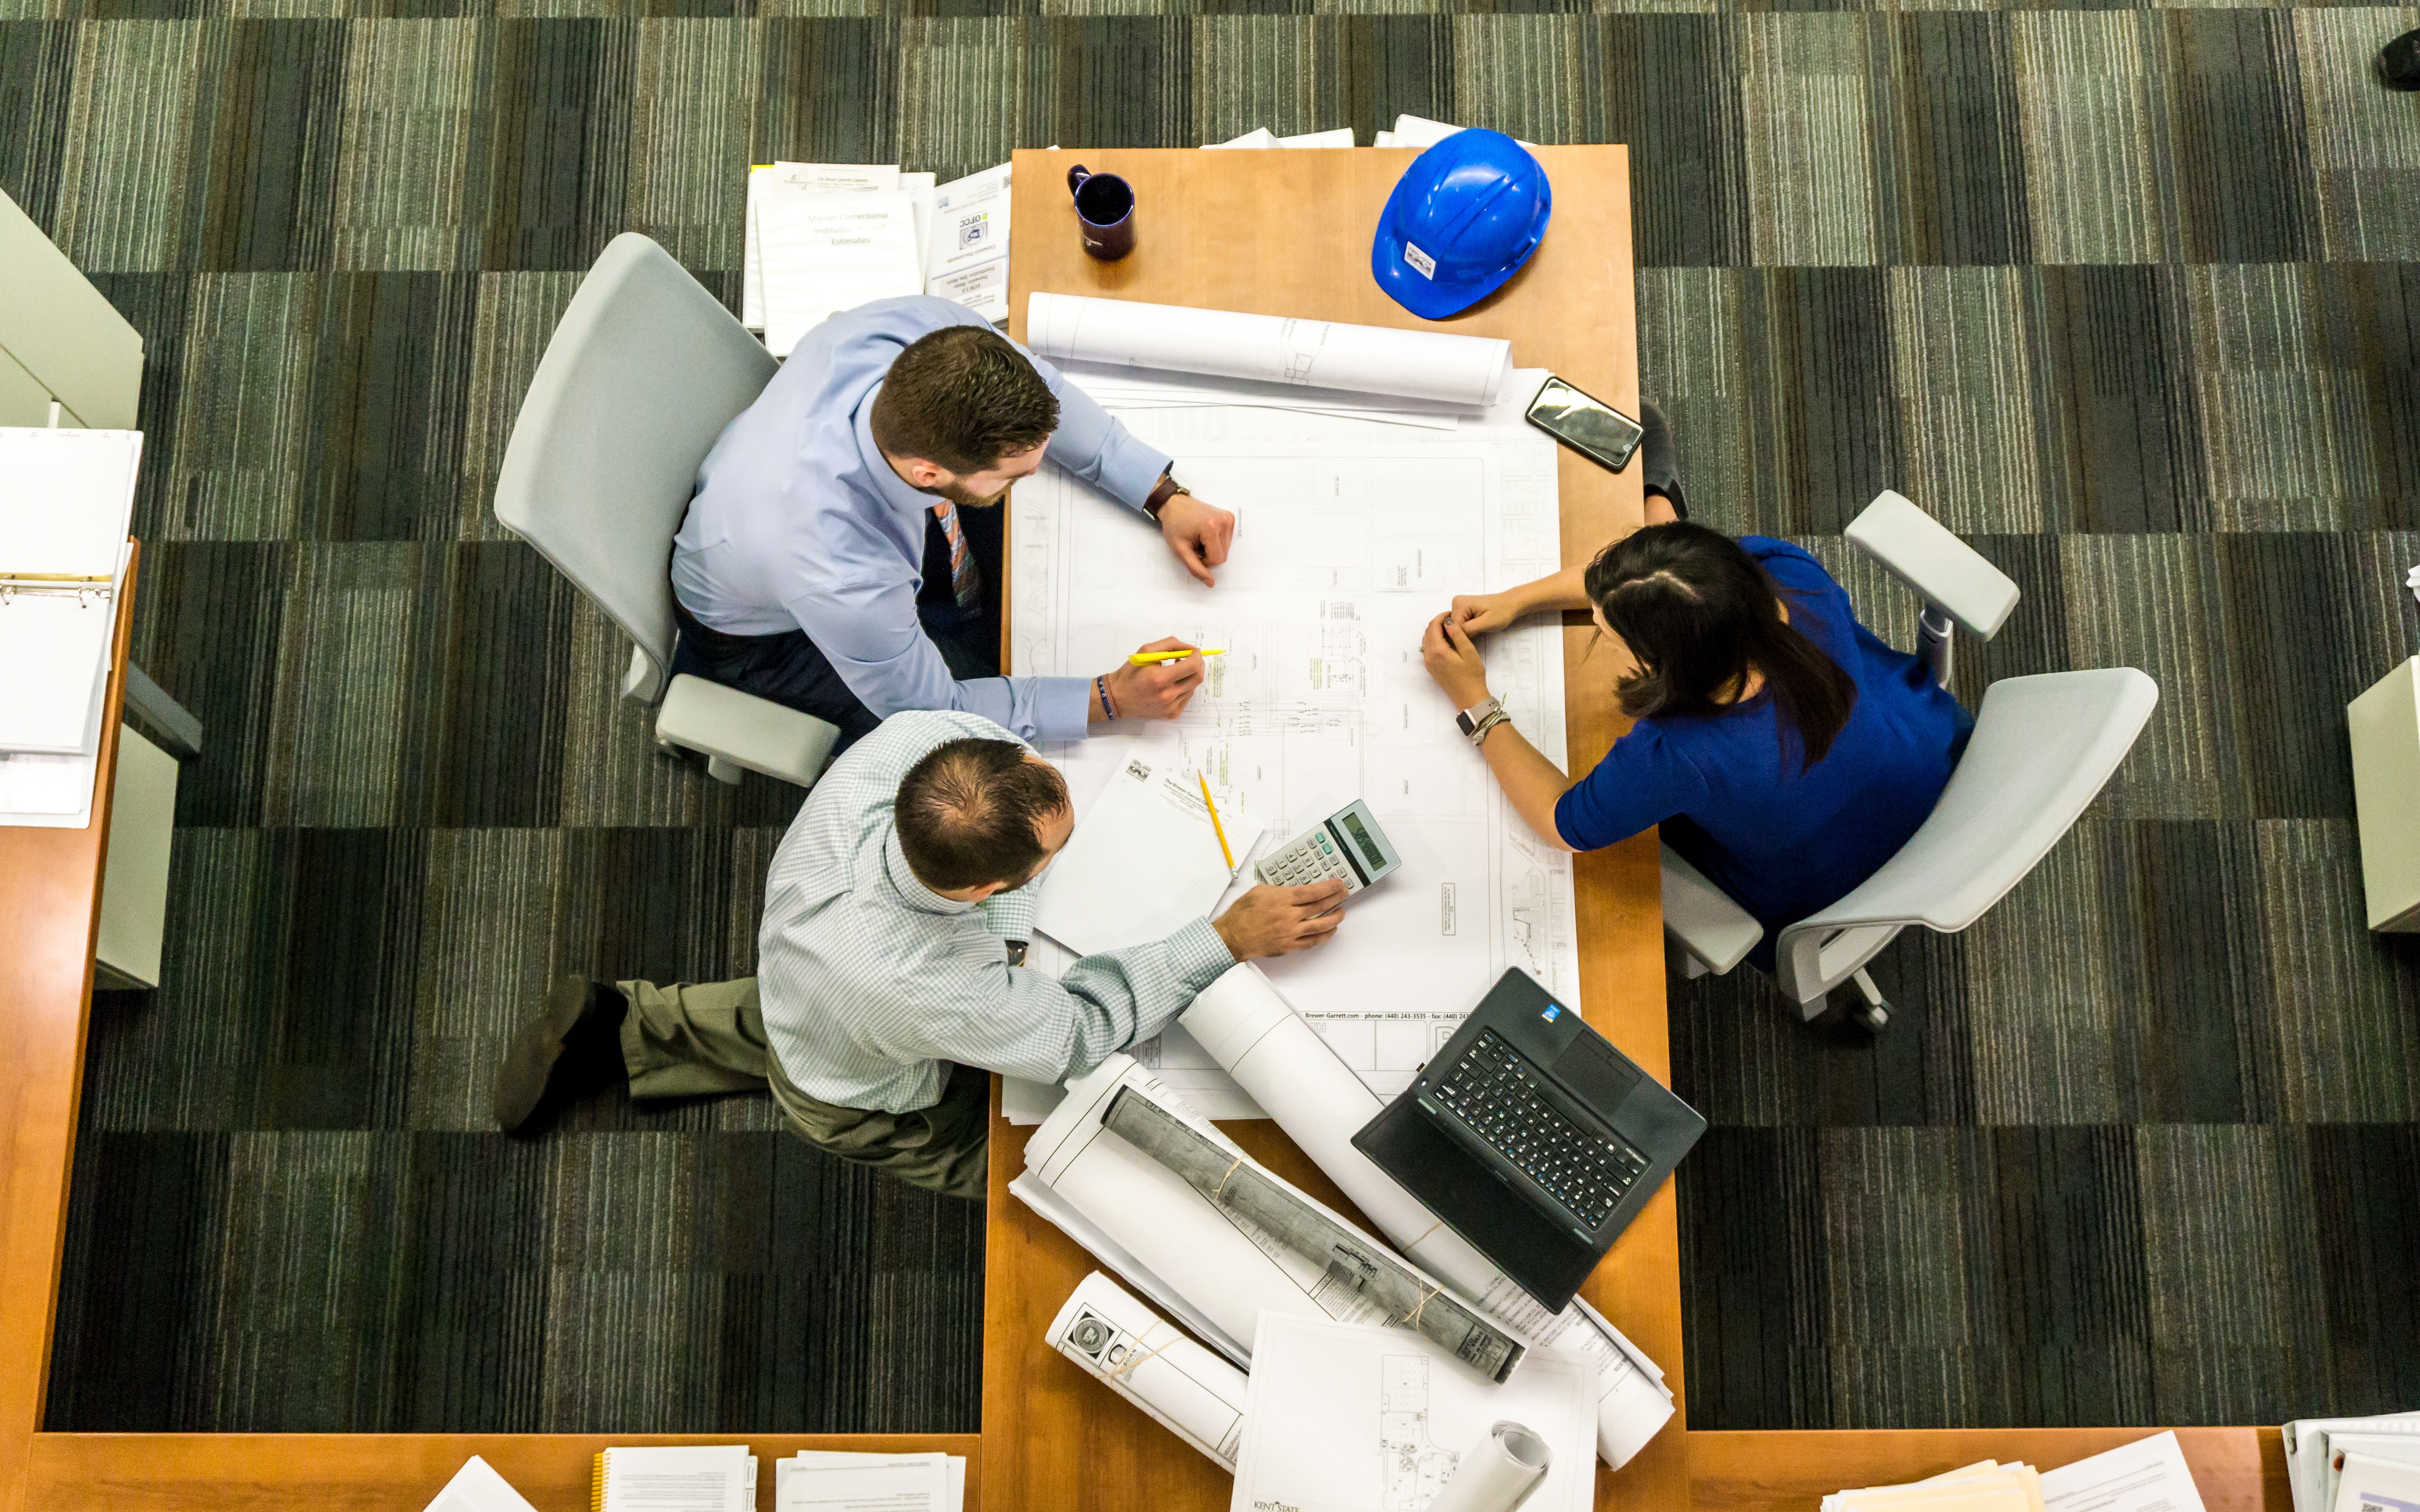 Tips to Build an Efficient Project Management Team from Scratch